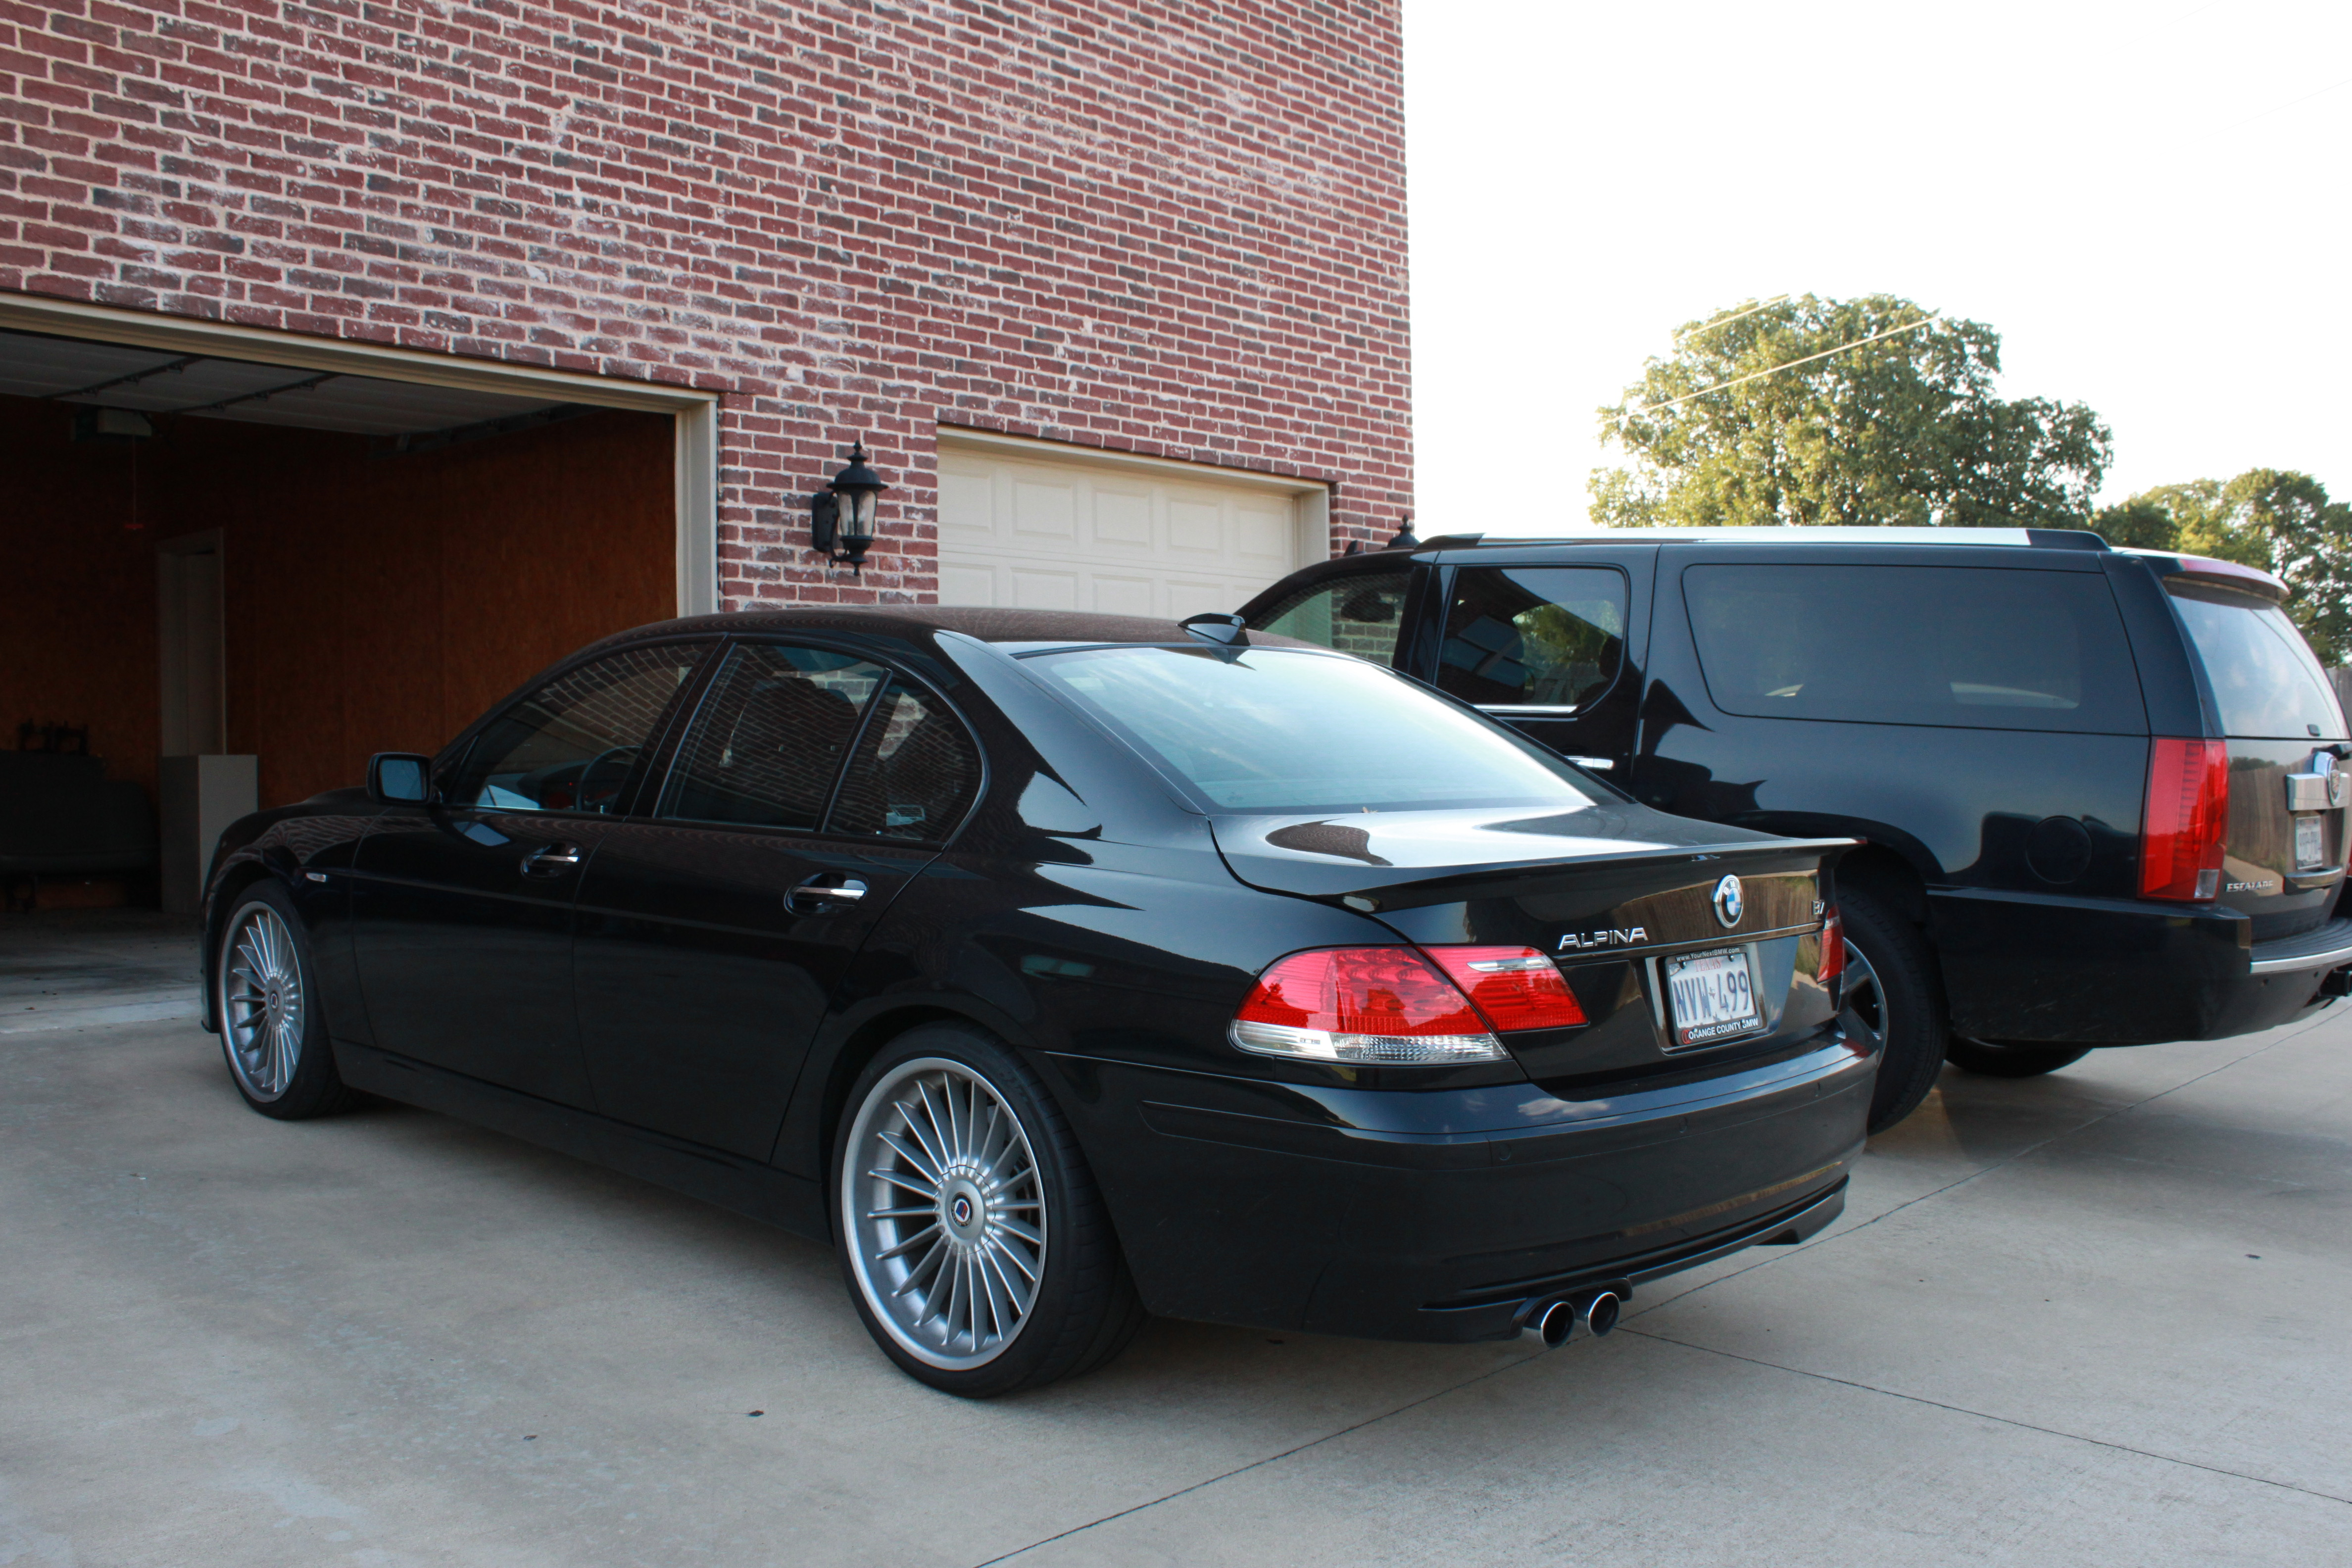 The Post Pictures Of Your Car Thread Page Sports Hip Hop - 2007 alpina b7 for sale